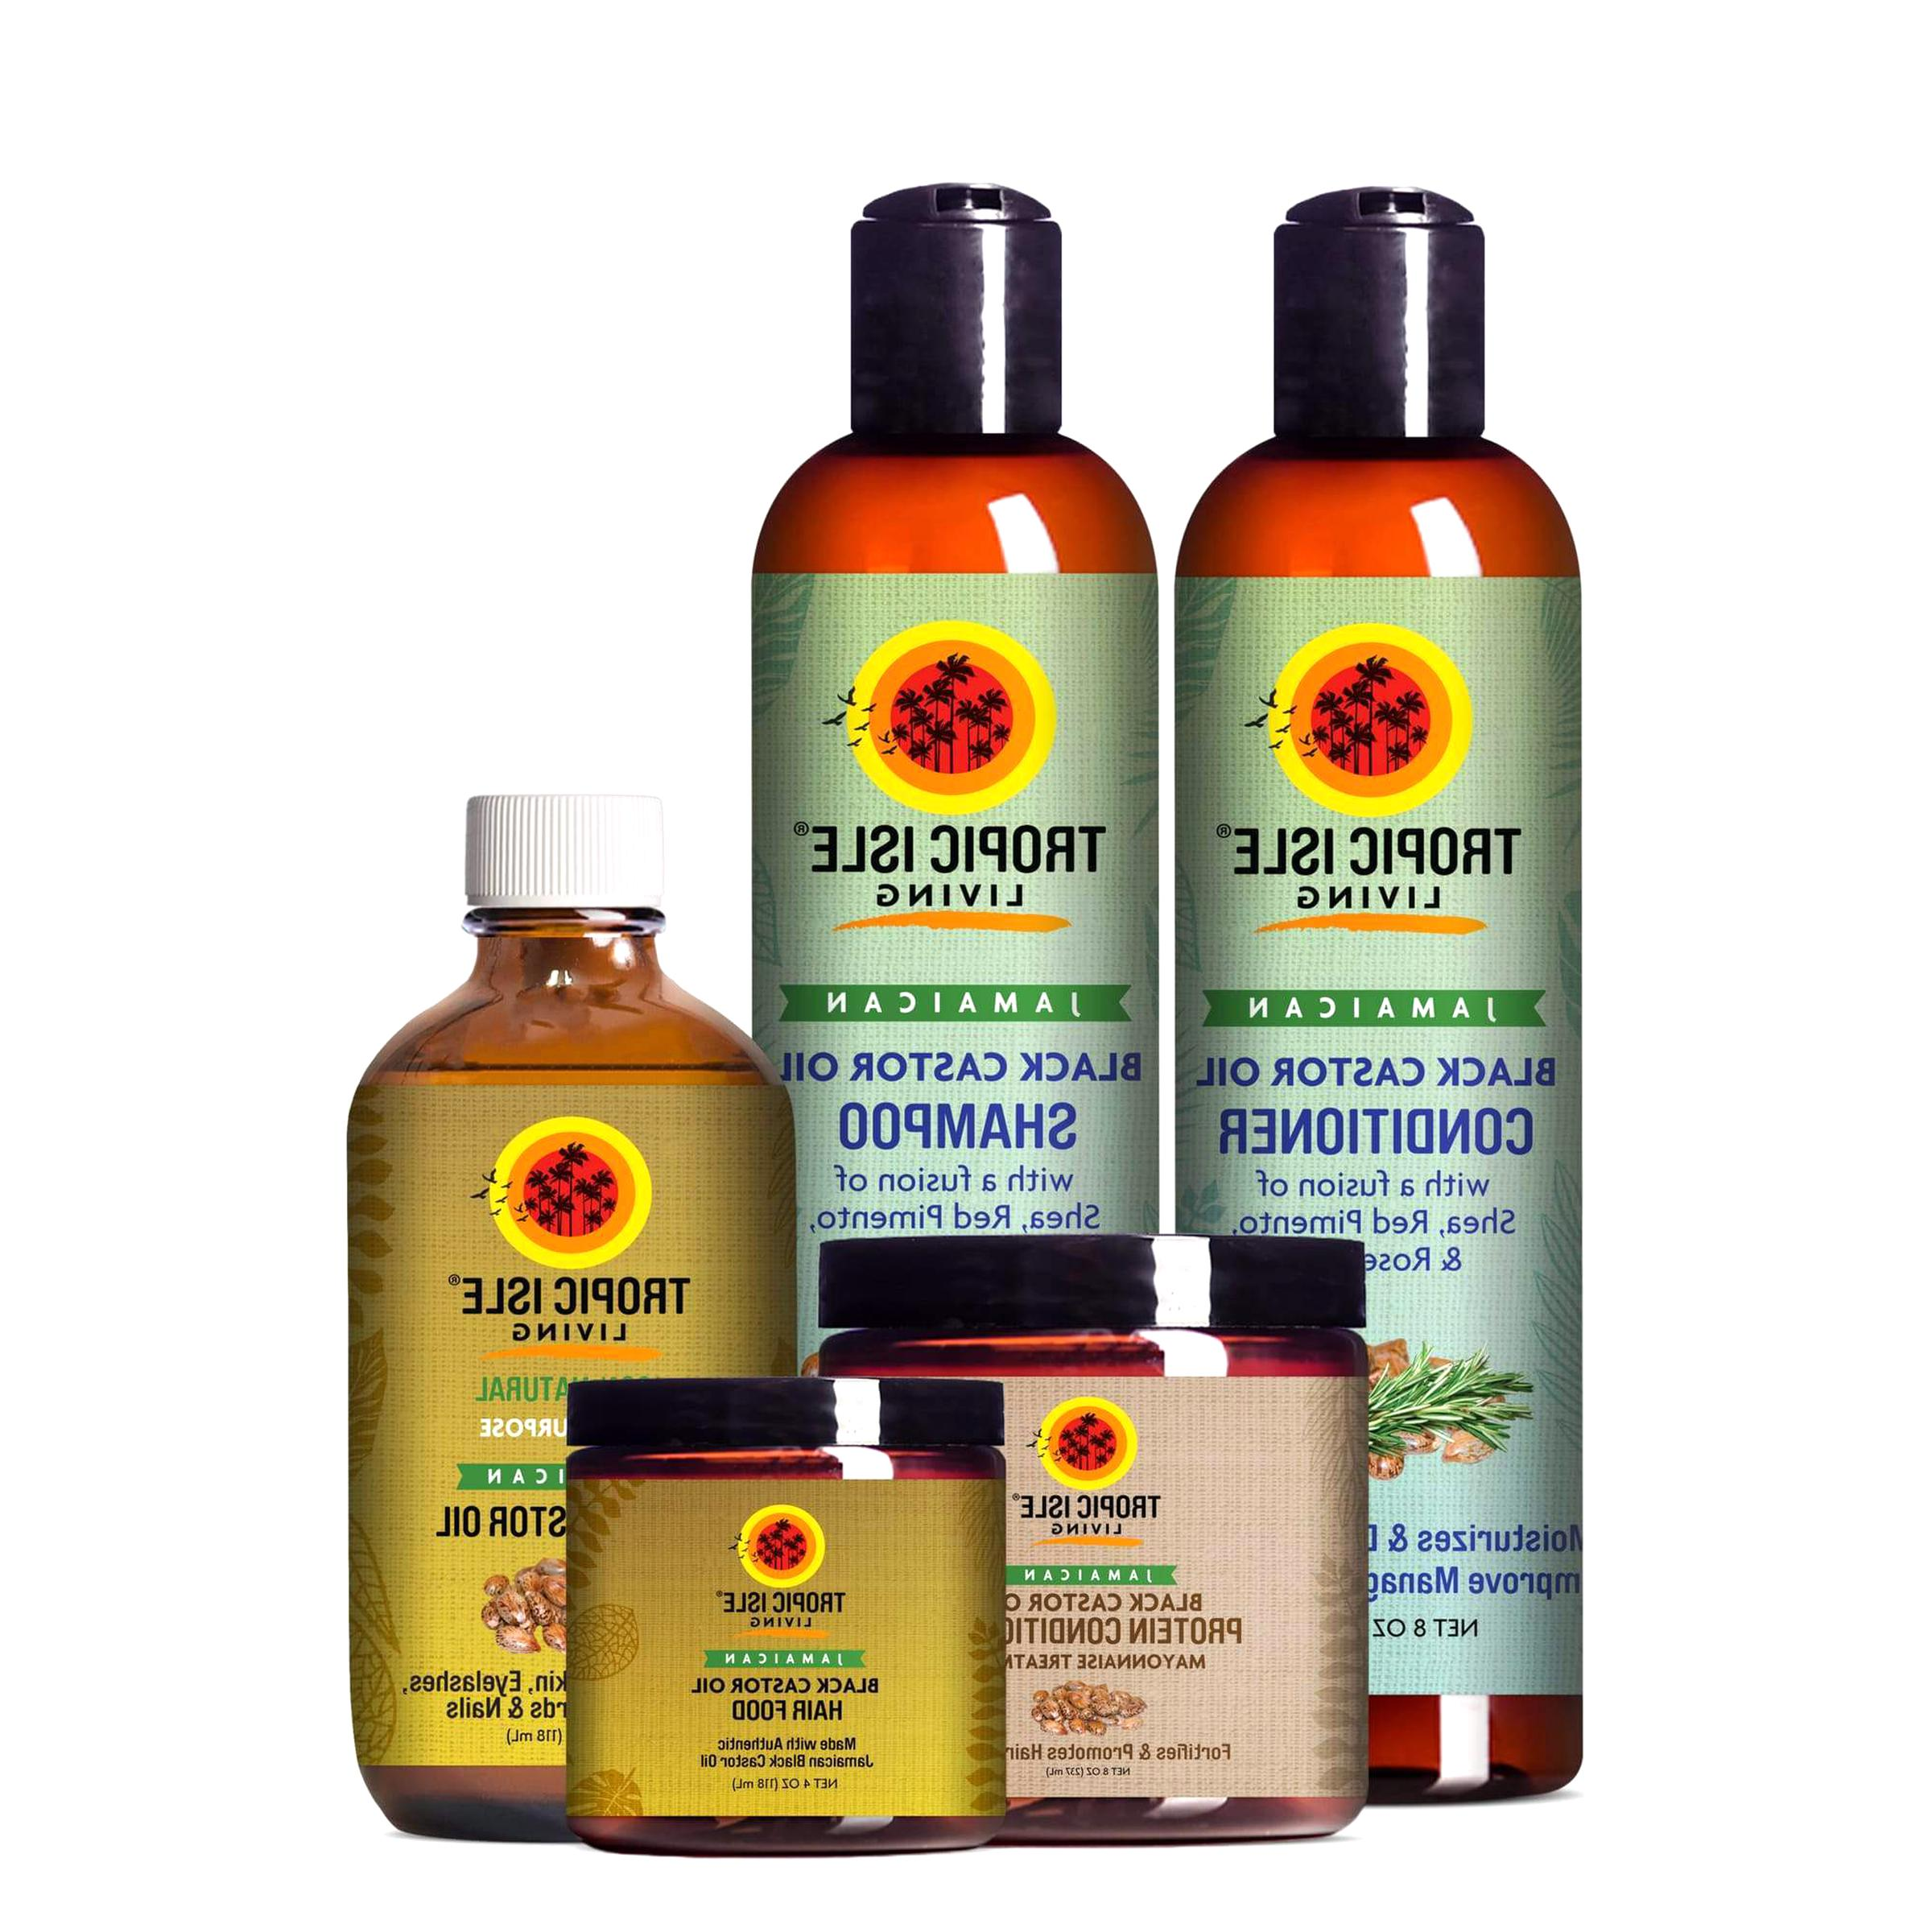 hair care products for sale